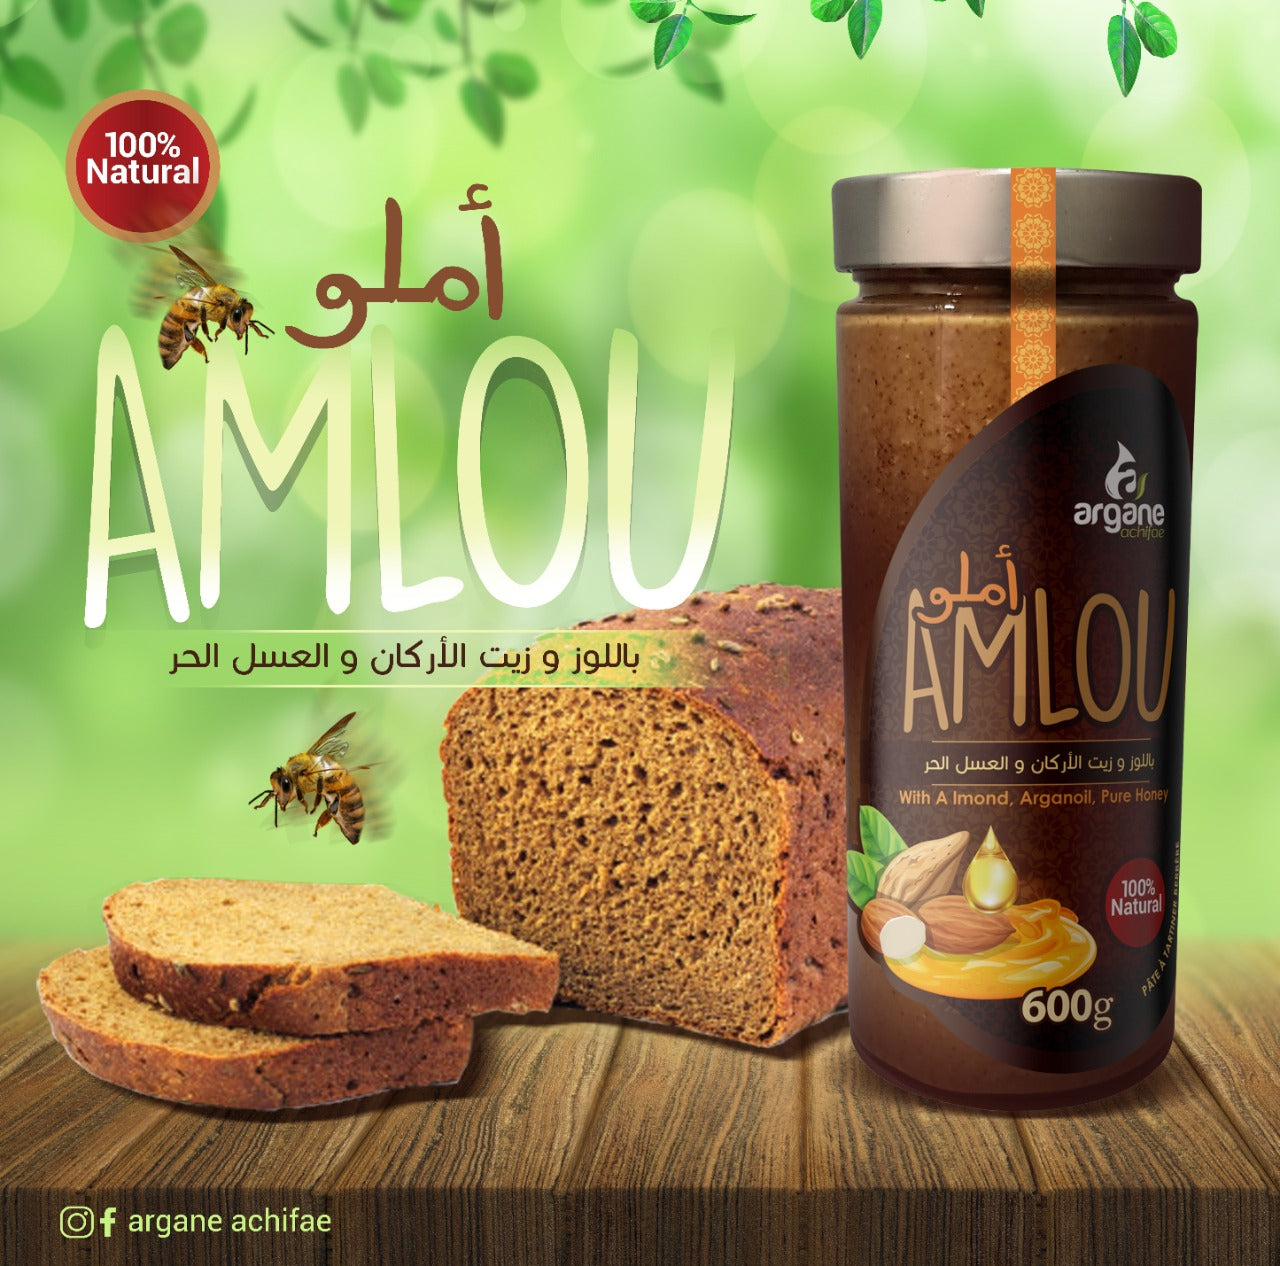 Berber Morocan Amlou with Sweet Almond and Organic USDA Argan Oil